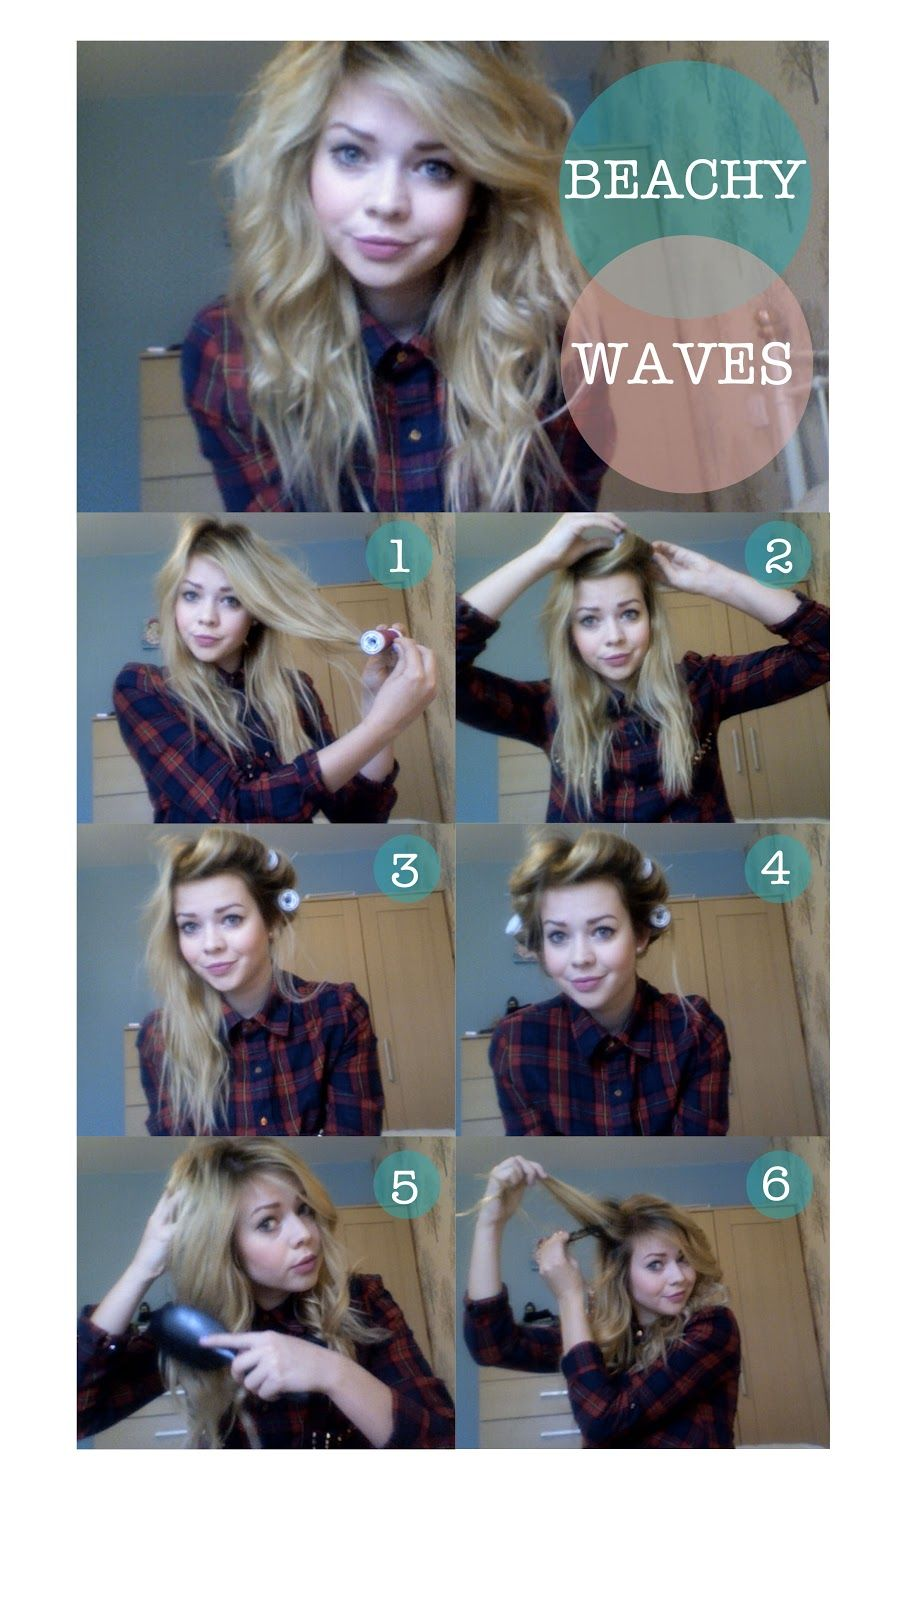 Beach waves my hair is already wavy but i have so many layers it